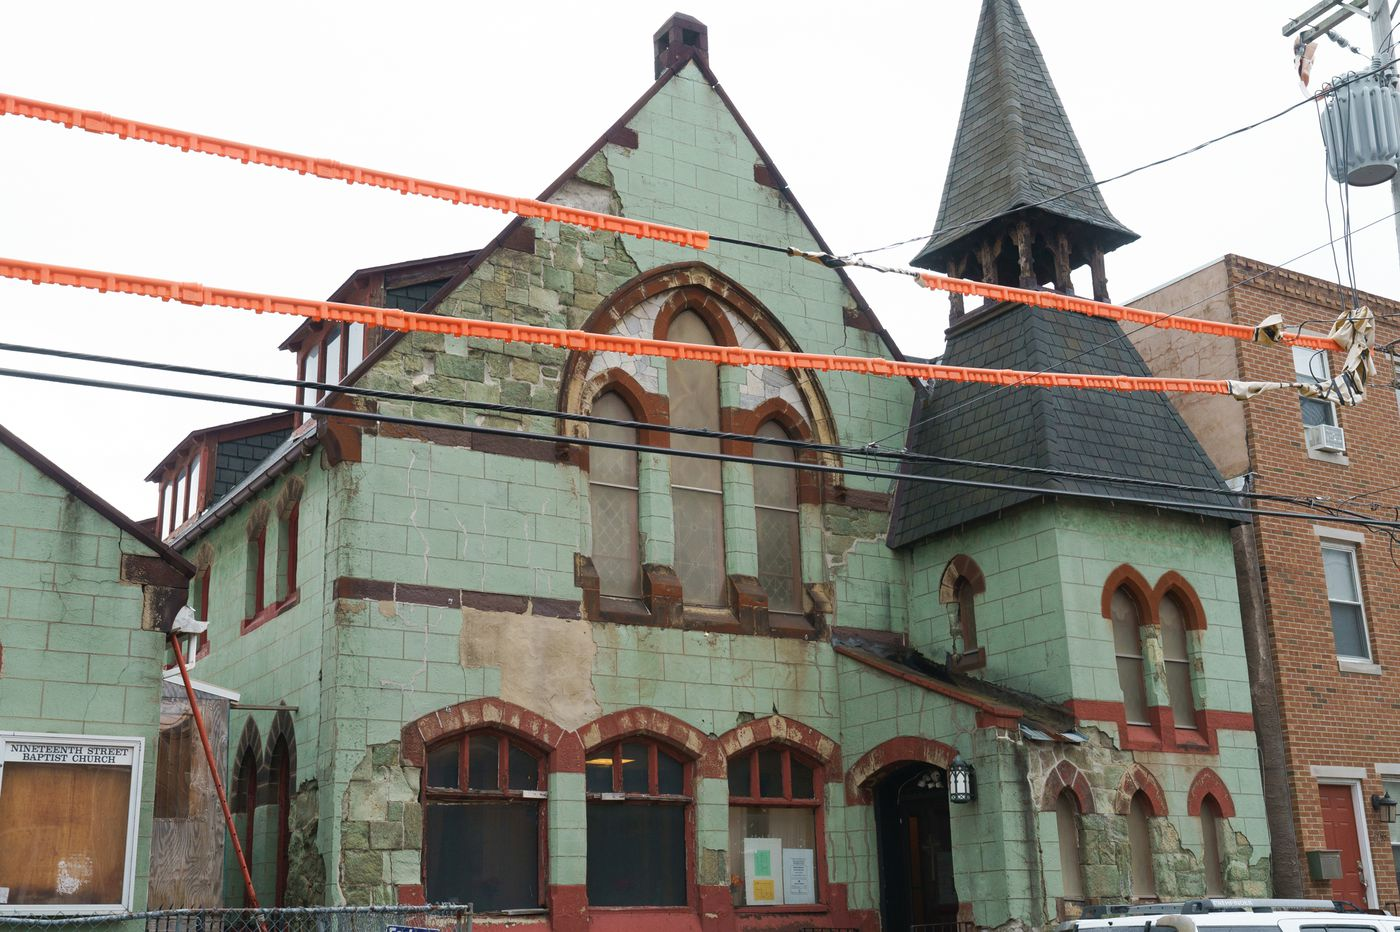 After search for preservationist buyer, historic Point Breeze church with ties to architect Frank Furness moves toward demolition